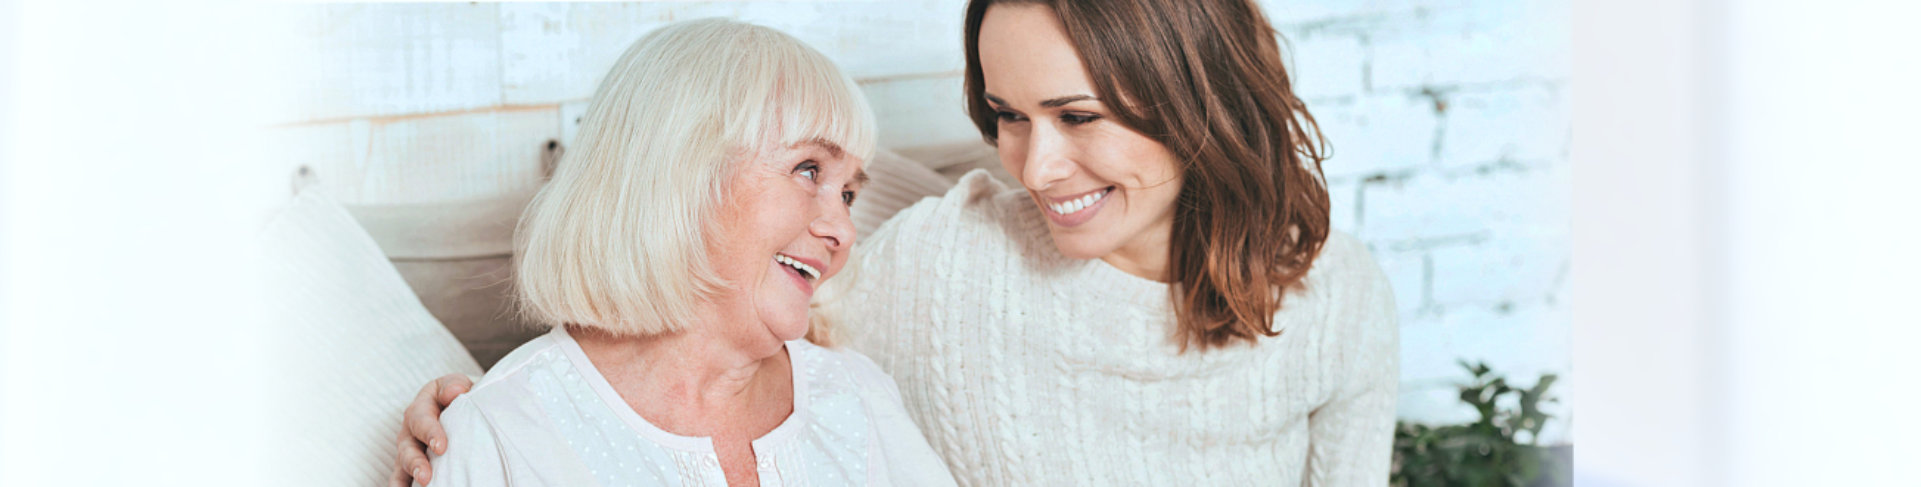 caregiver and elderly talking